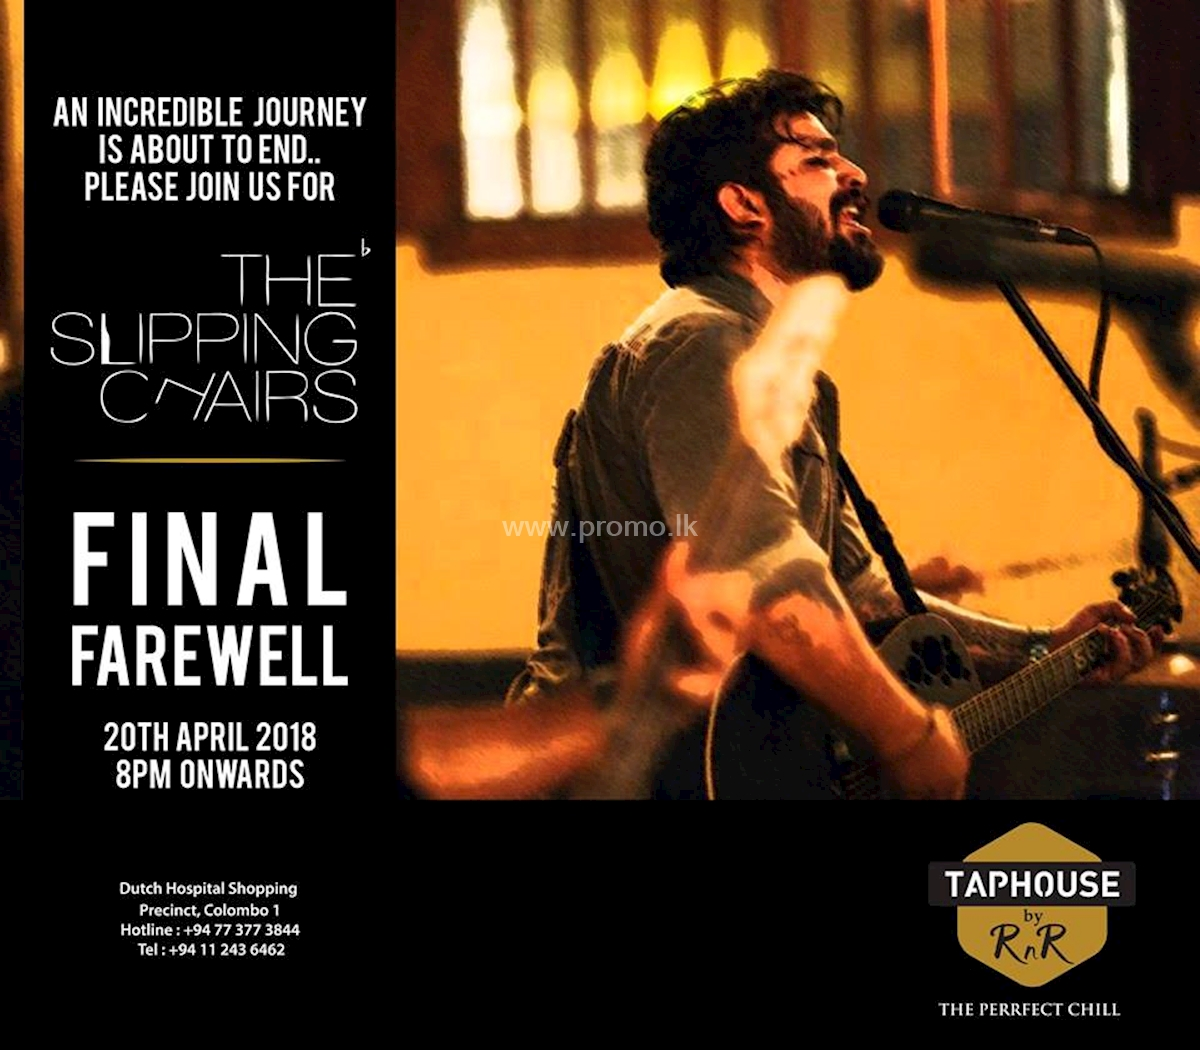 The Slipping Chairs Final Farewell at Taphouse by RNR